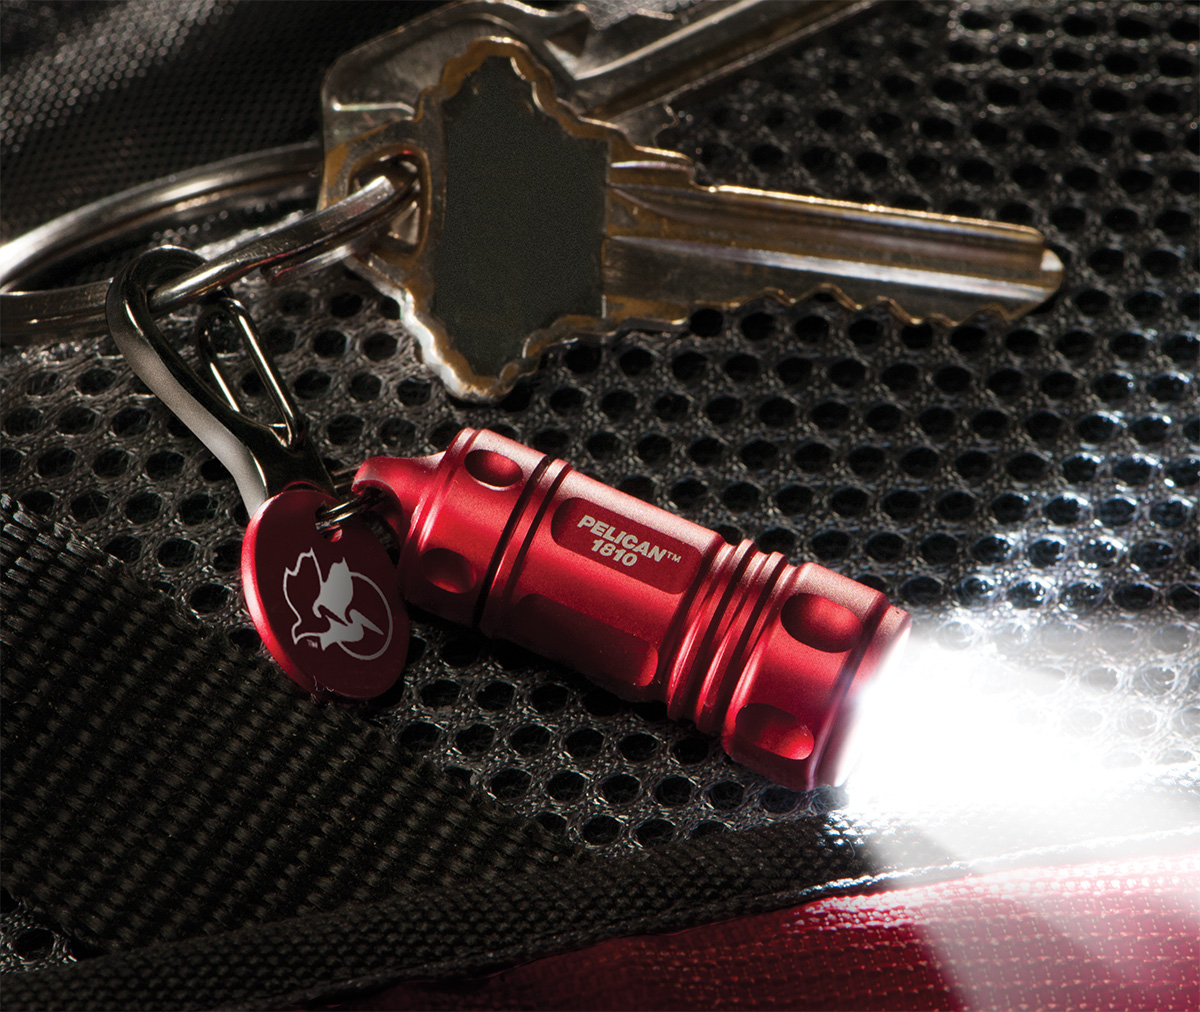 pelican peli products 1810 key chain led brightest flashlight